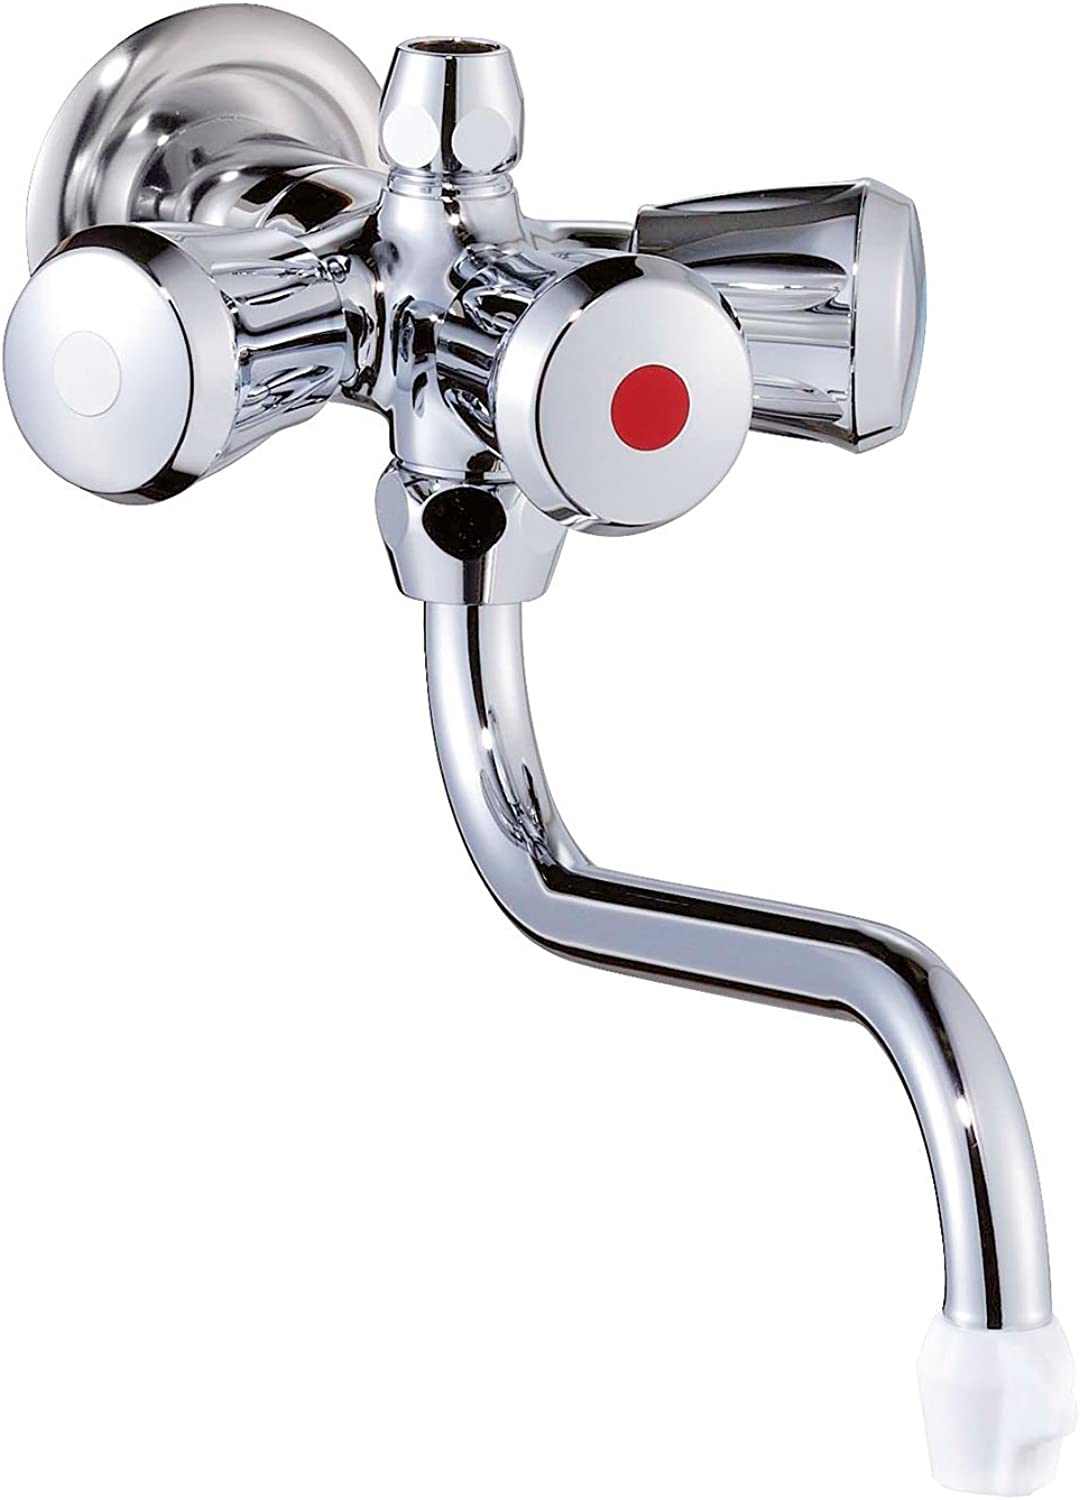 Wall-Mounted Bath Tap for Hot Water Chrome